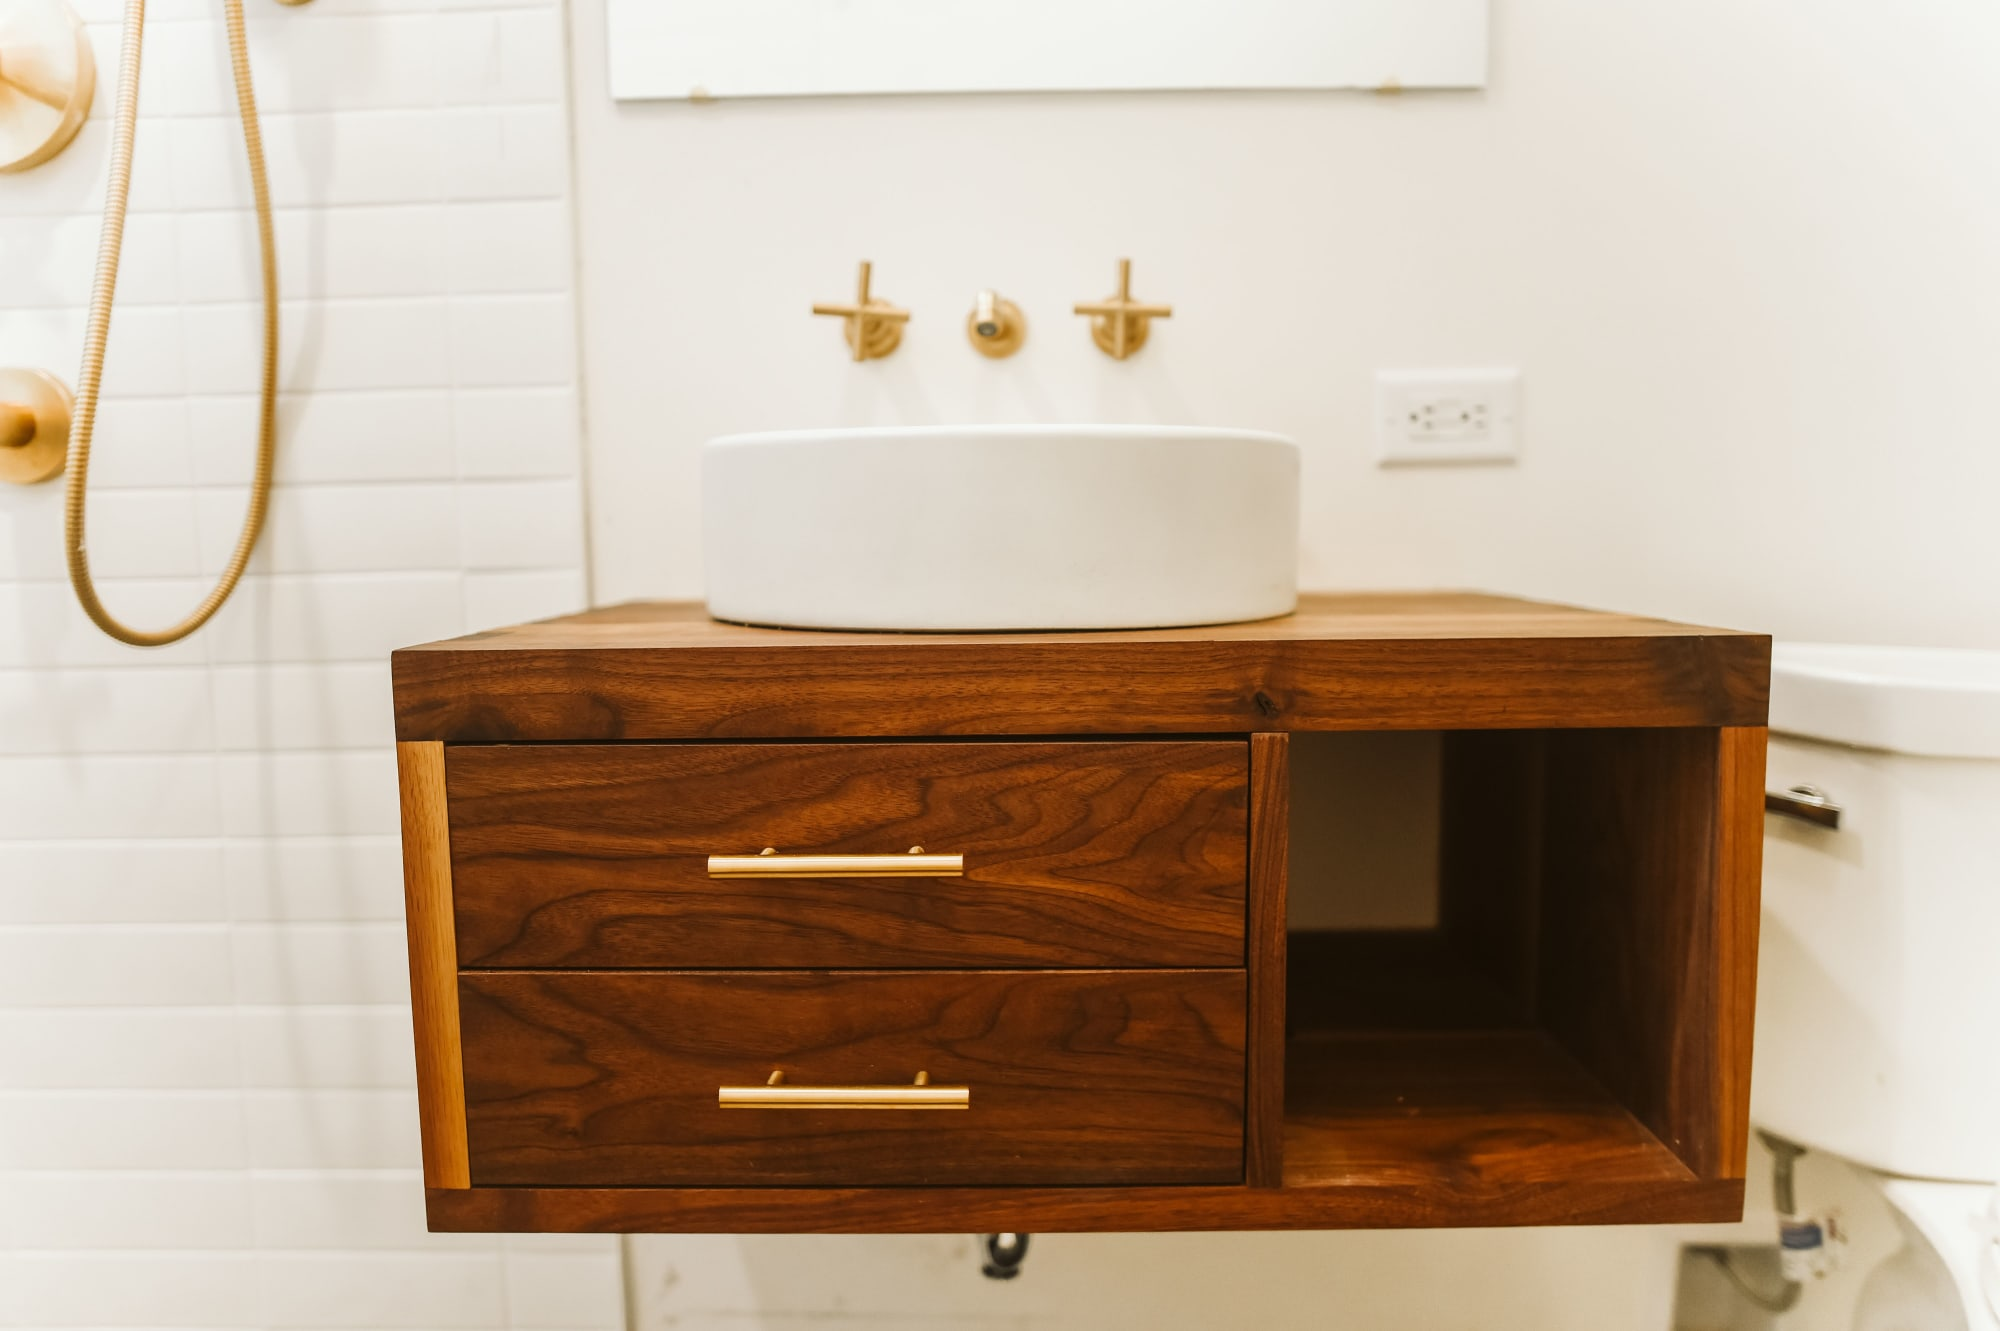 Mid Century Modern Vanity with Gold Hardware